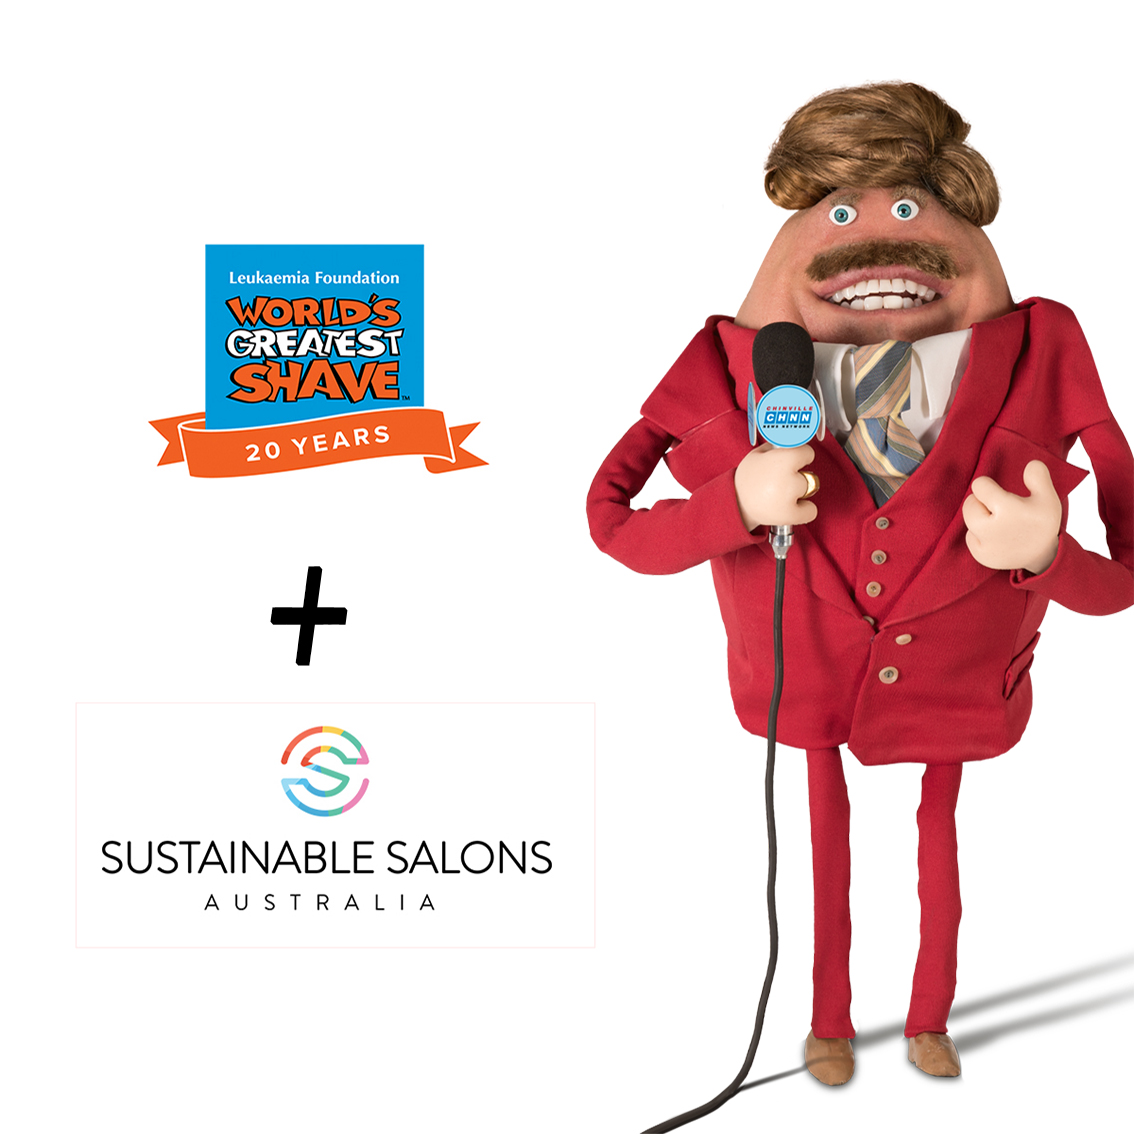 World's Greatest Shave + Sustainable Salons